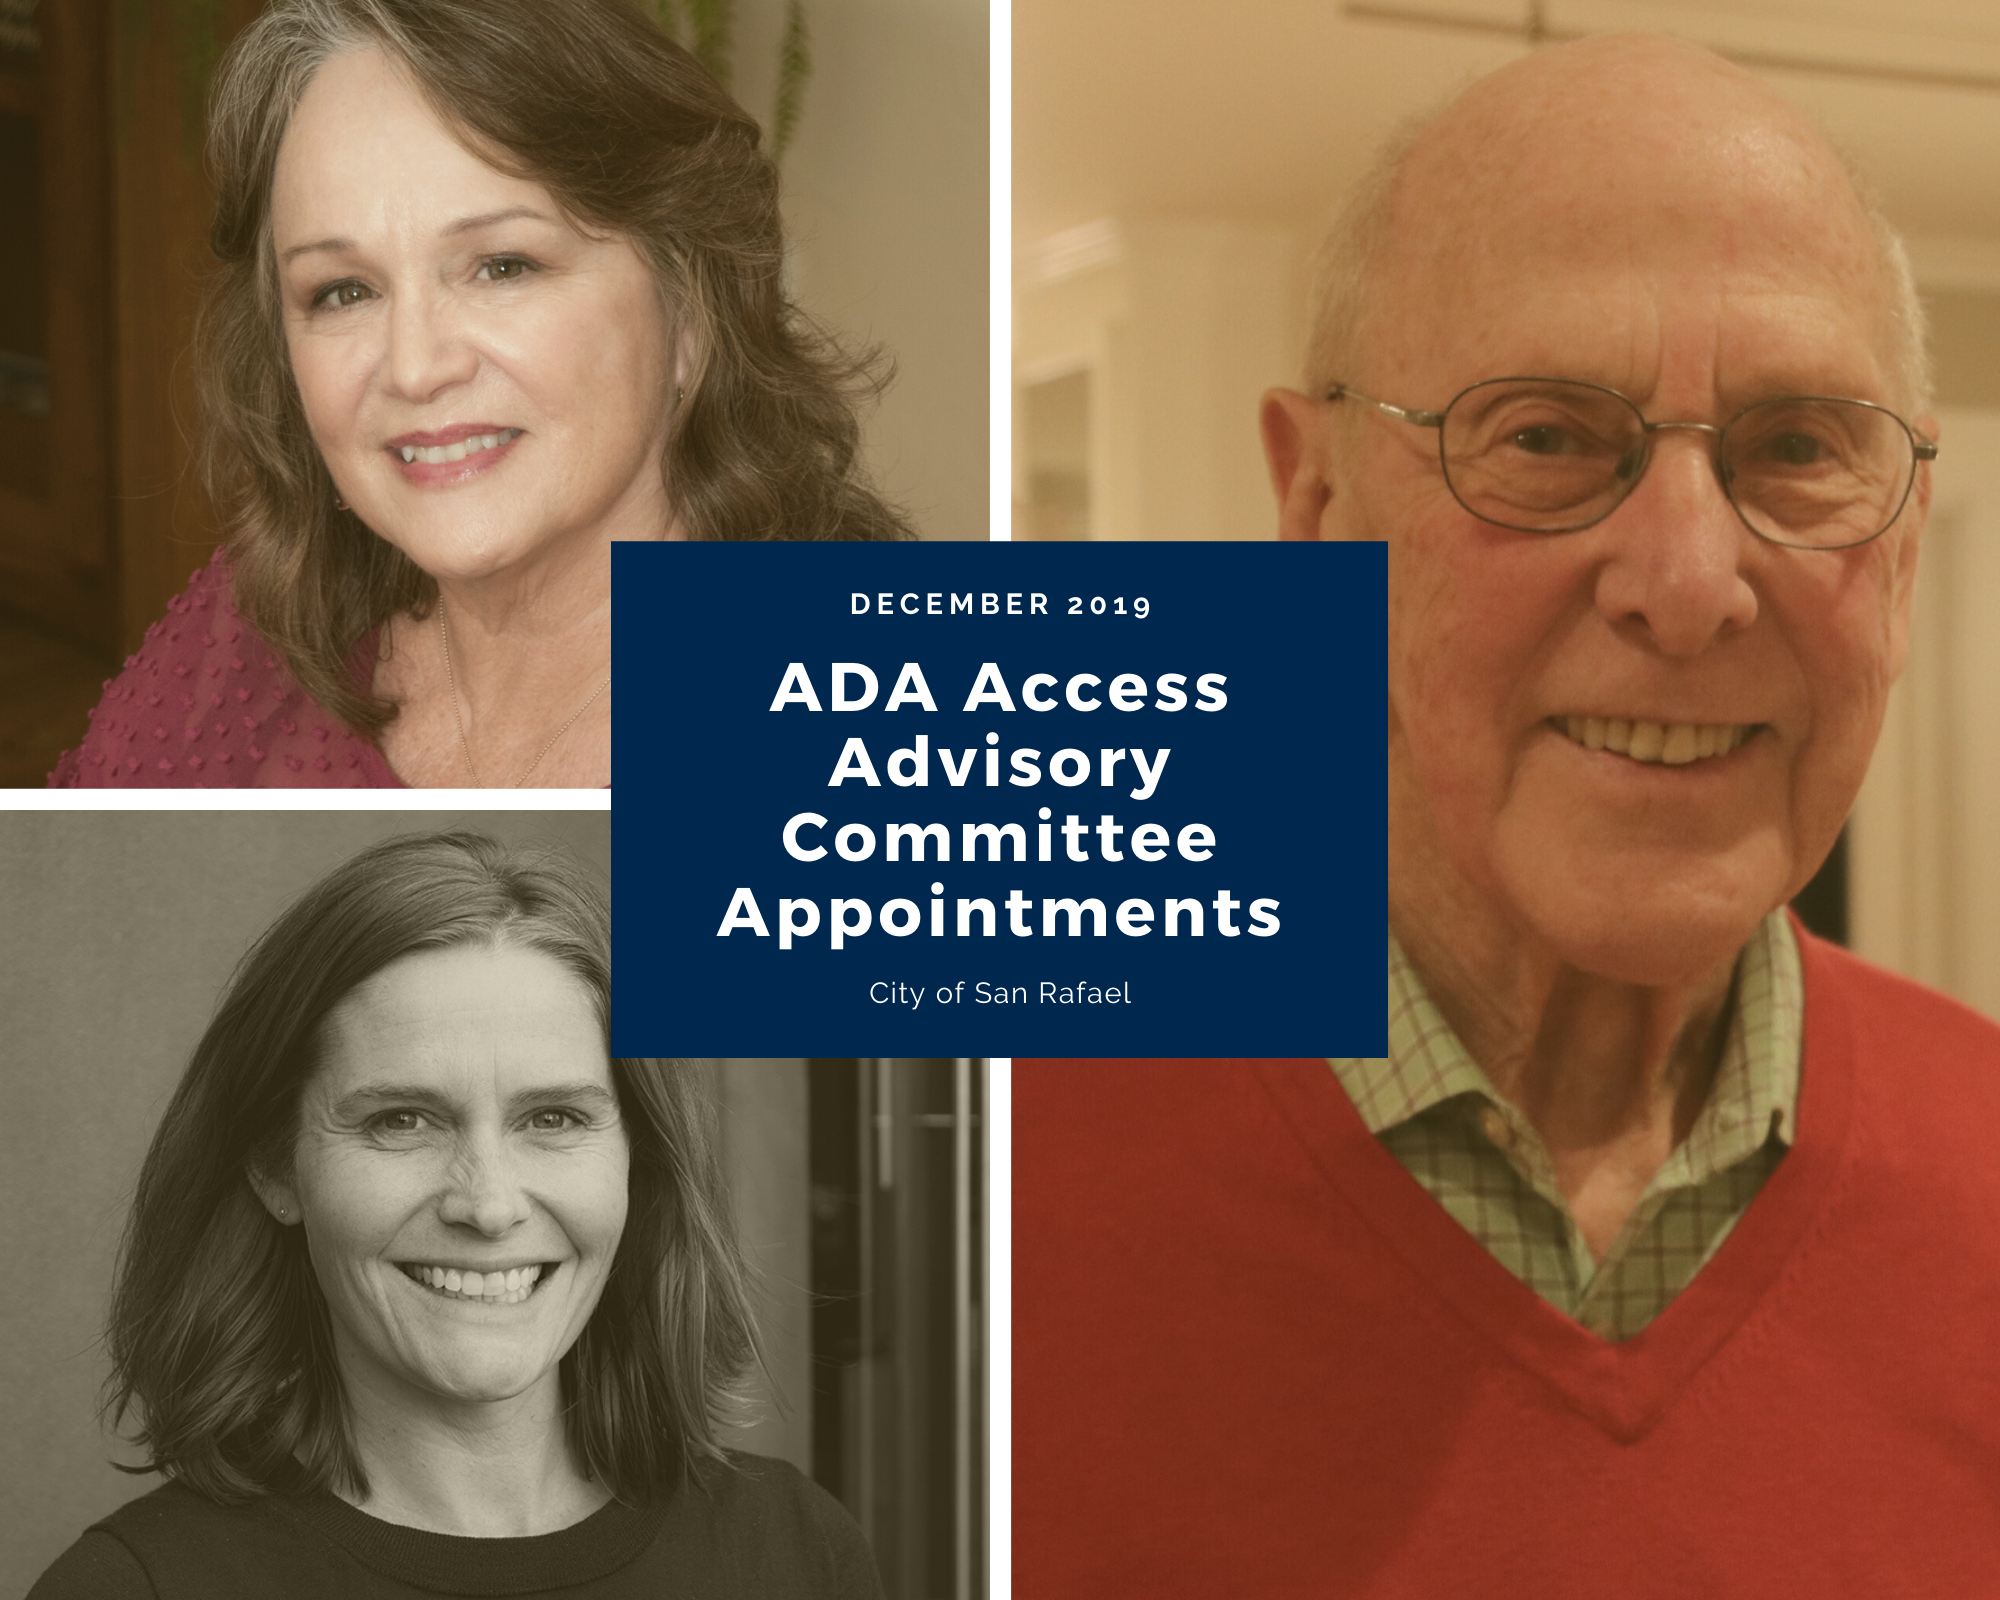 ADA Appointments 2019-12